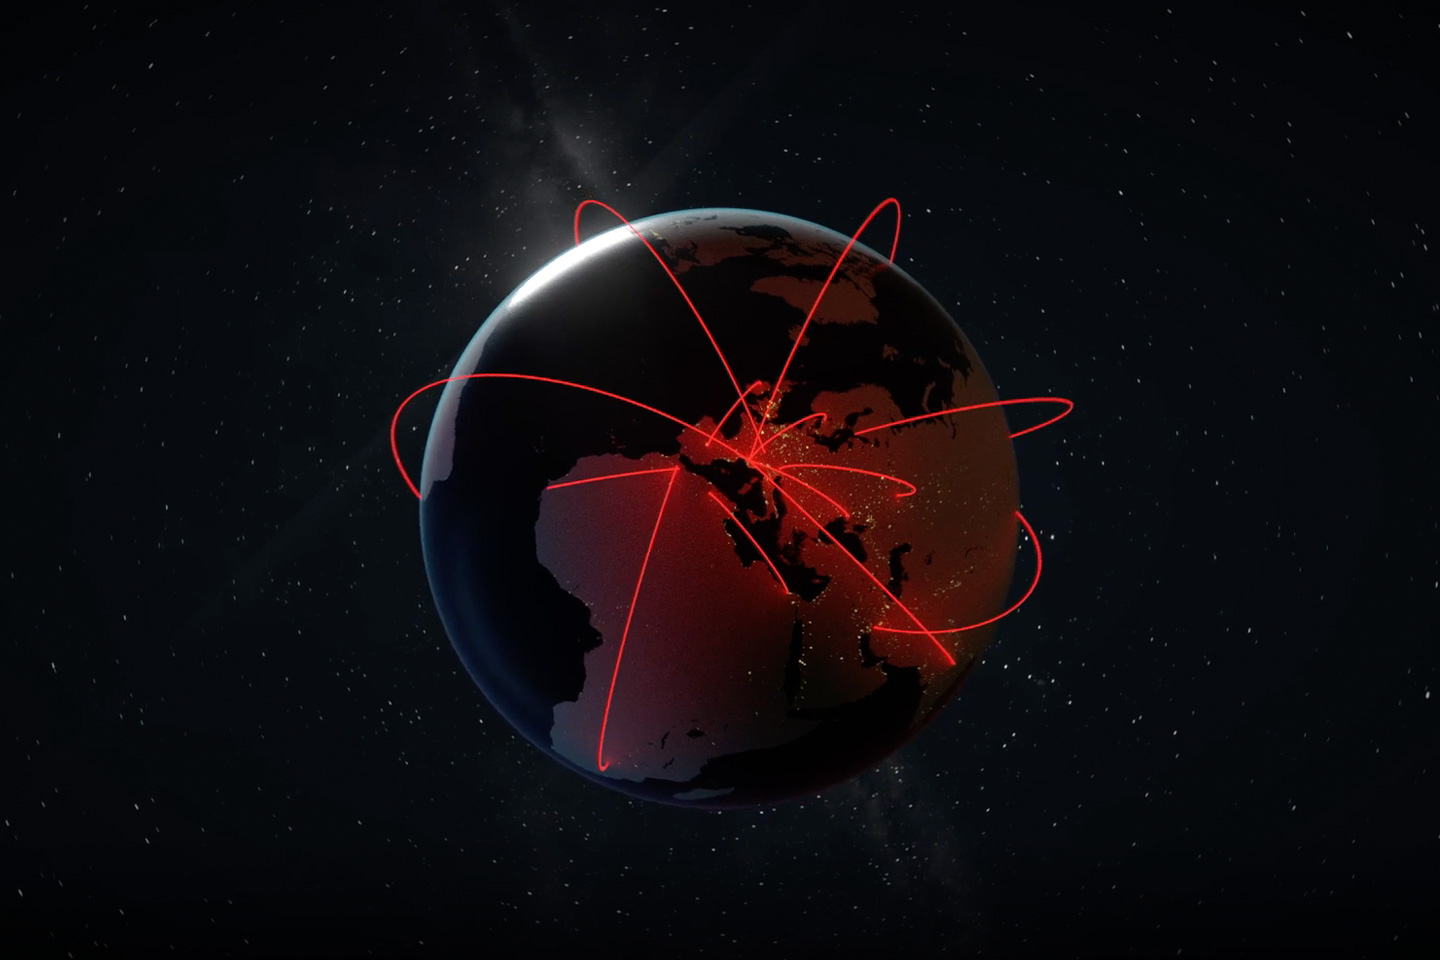 cyber attacks, represented by bright red lines crisscrossing the globe from a centralized region